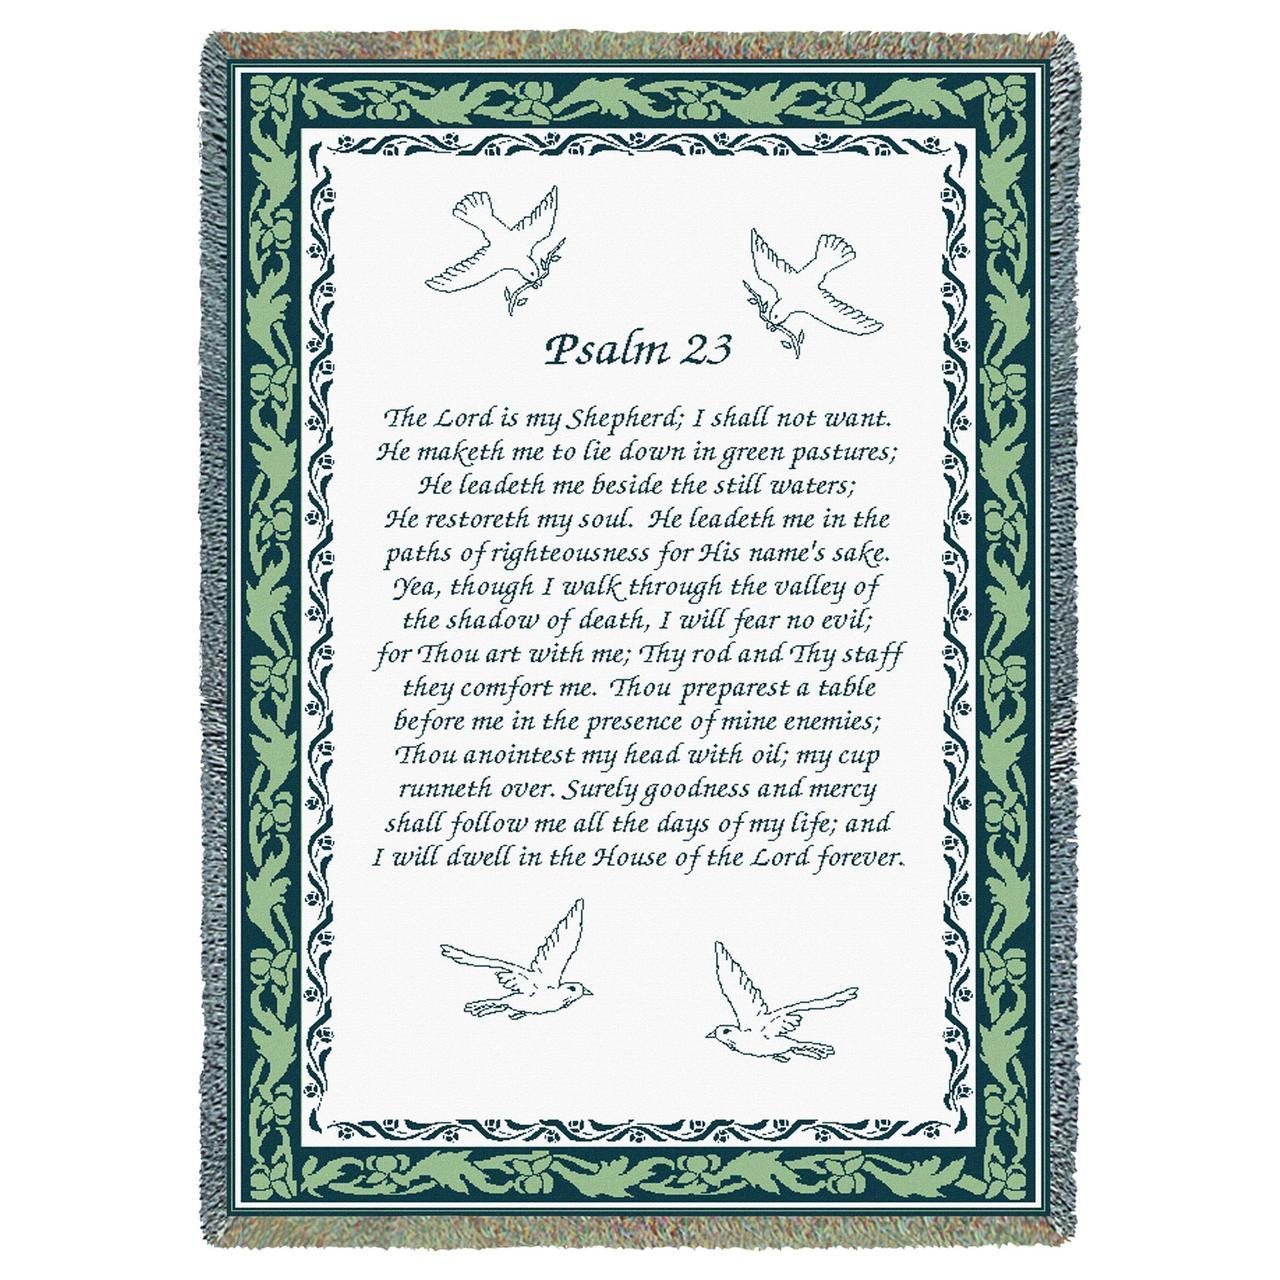 psalm-23-scripture-dove-green-inspirational-religious-tapestry-throw-blanket.jpg